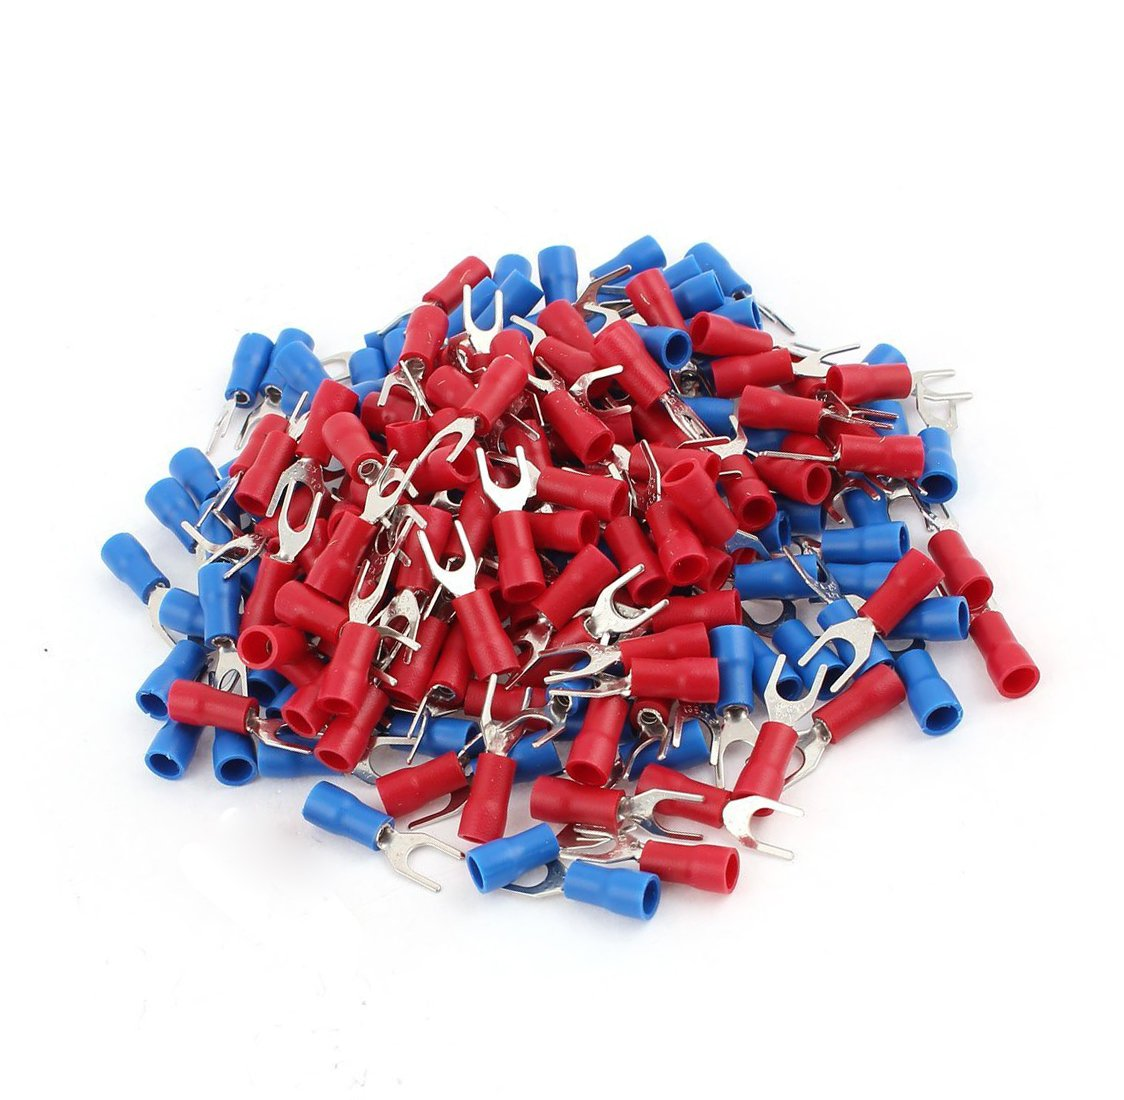 YXQ 240Pcs 22-16AWG Gauge Fork Spade Insulated Terminal Fit for #8 Bolt Red//Blue Quick Splice Crimp Connectors Wire Cable Assortment Kit